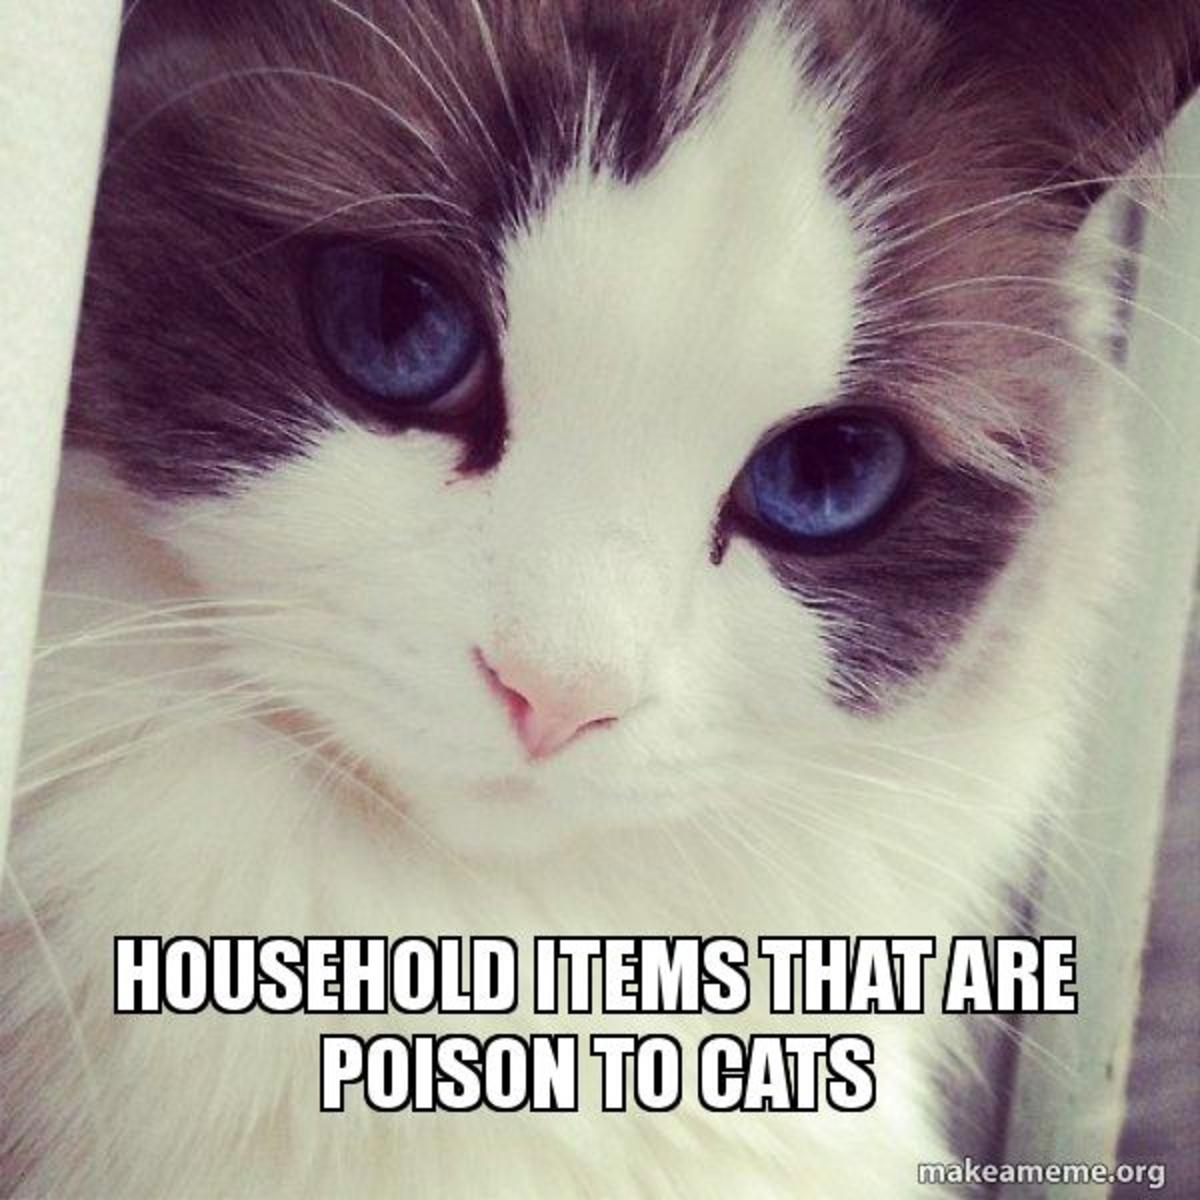 Household Poisons To Your Cat